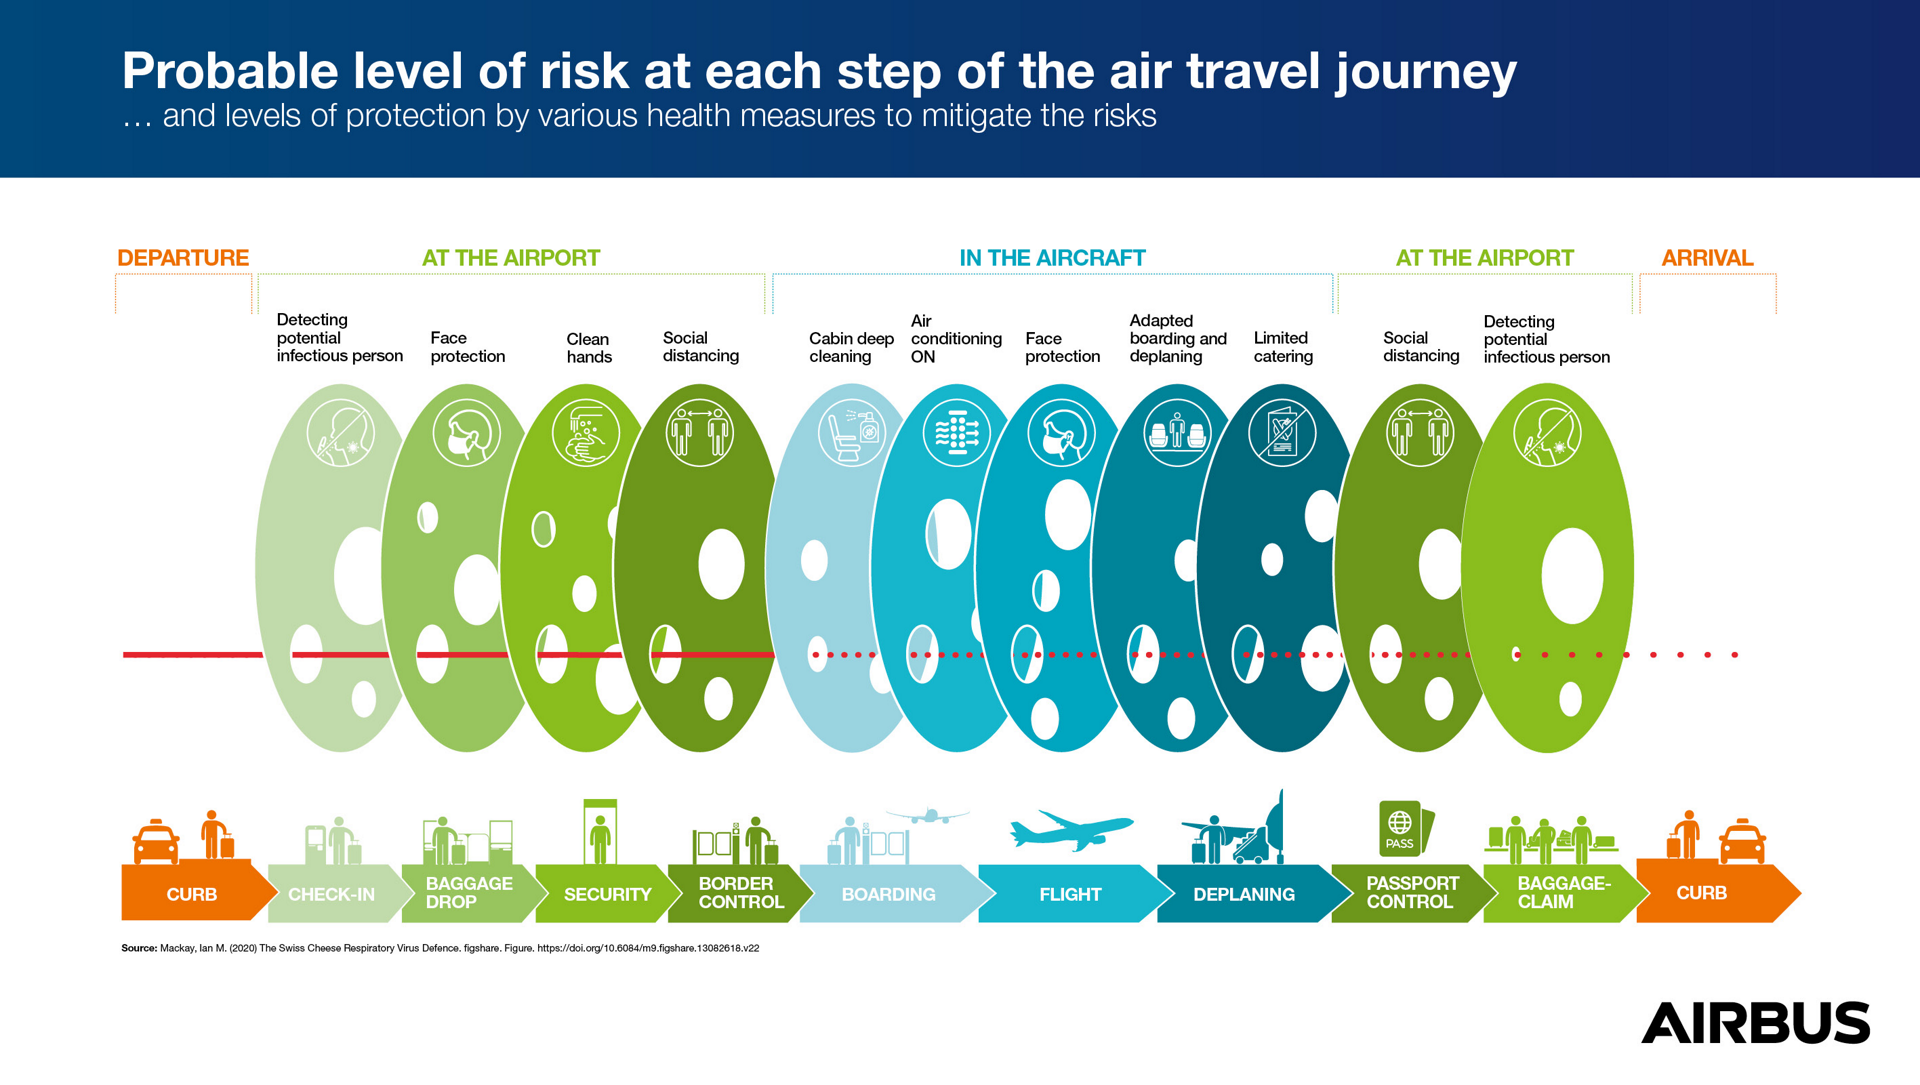 Probable level of risk at each step of the aur travel journey